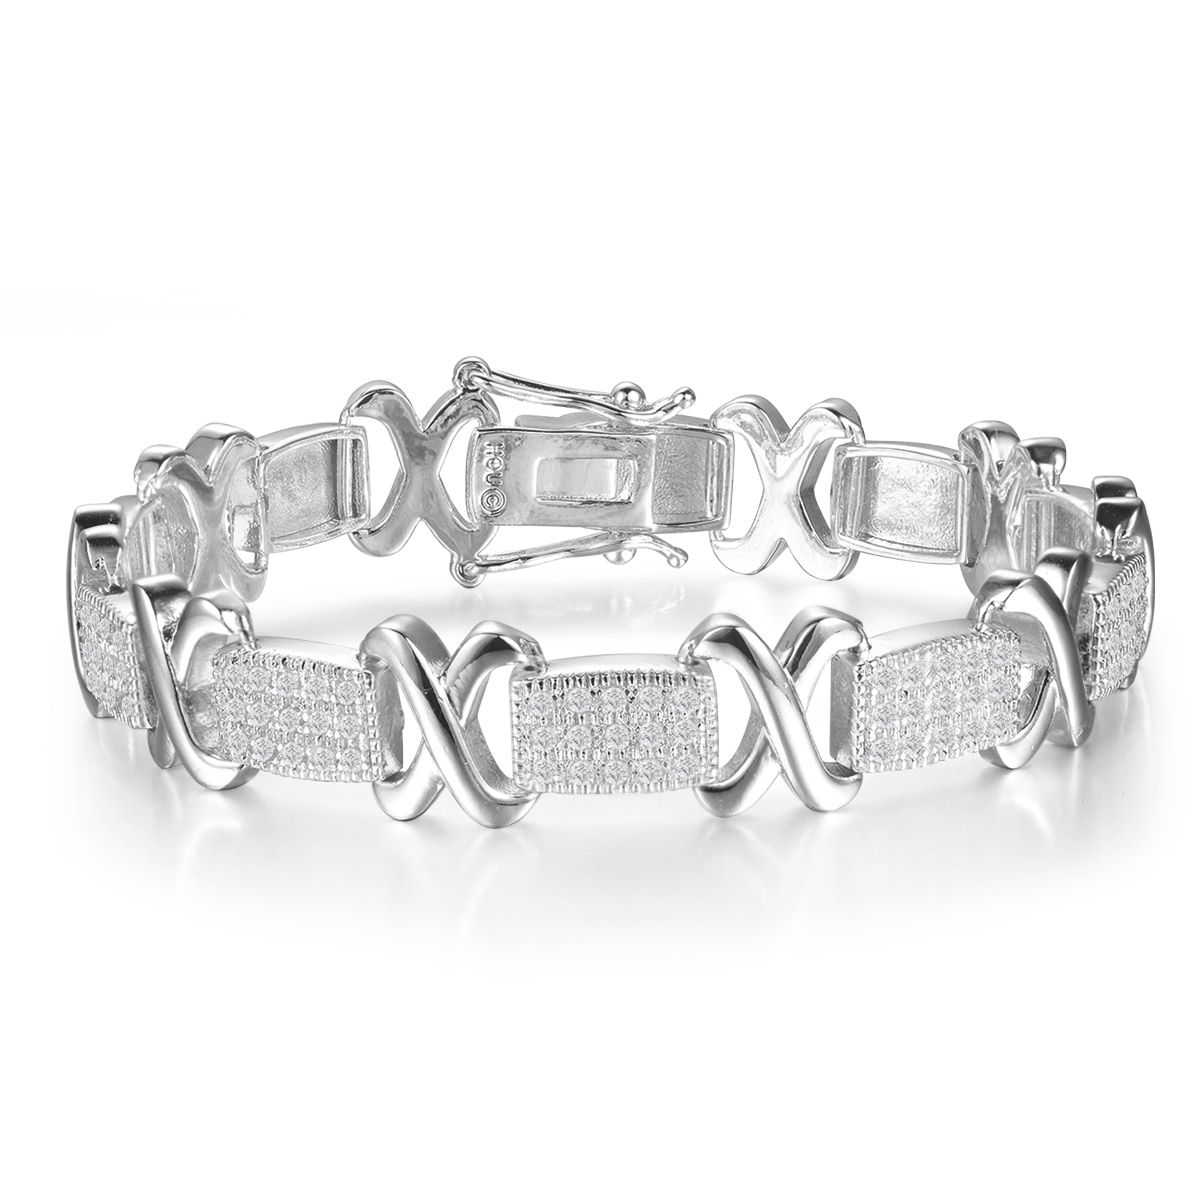 carat diamond x tennis bracelet in white gold overlay white